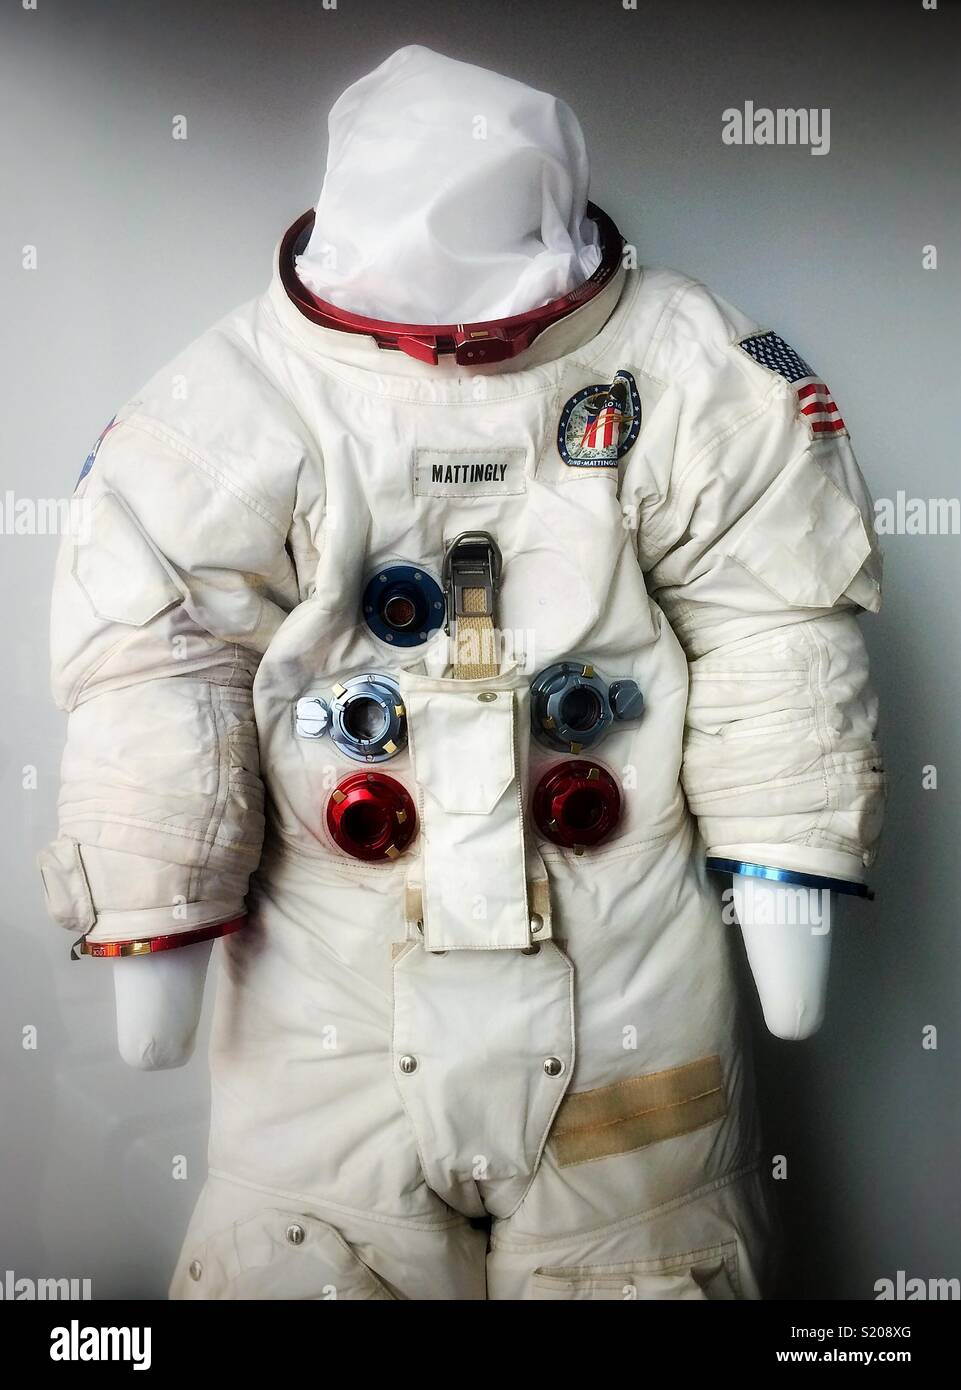 Astronaut Ken Mattingly 's spacesuit in the Science Museum of Los Angeles, California, USA - Stock Image